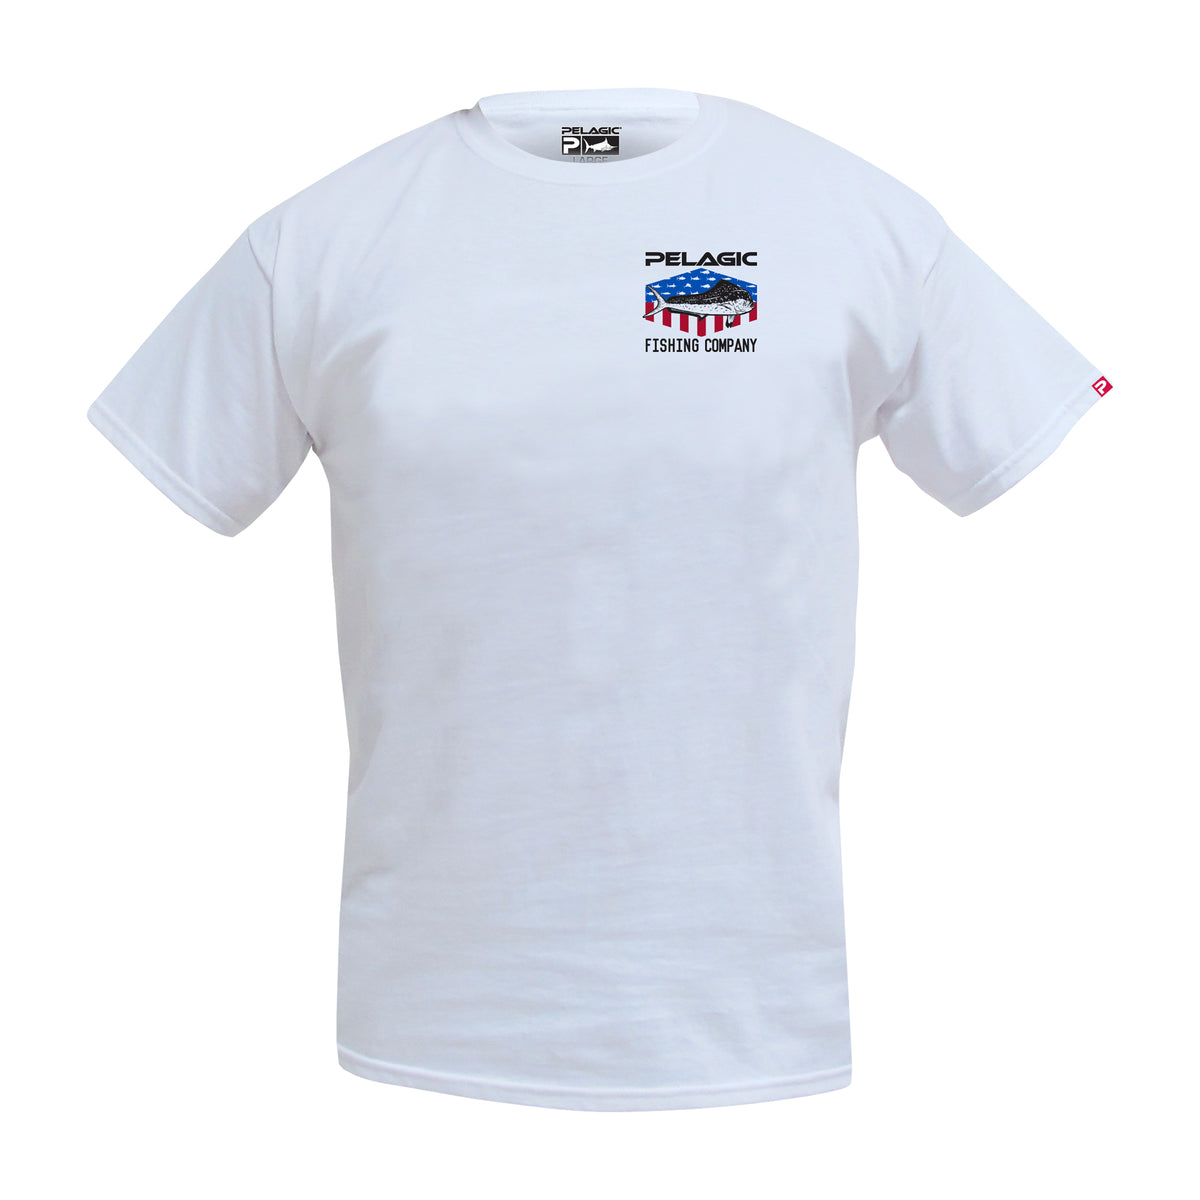 Patriot Dorado Fishing T-shirt Big Image - 2